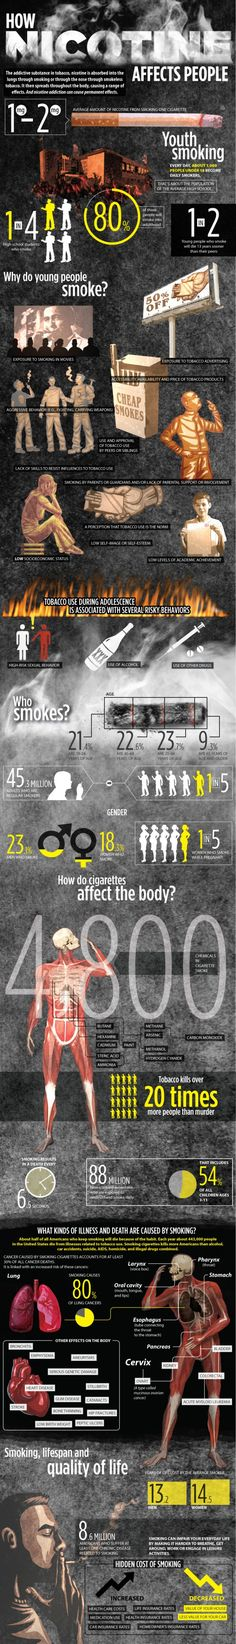 noid-Infographic-How-Nicotine-Affects-People